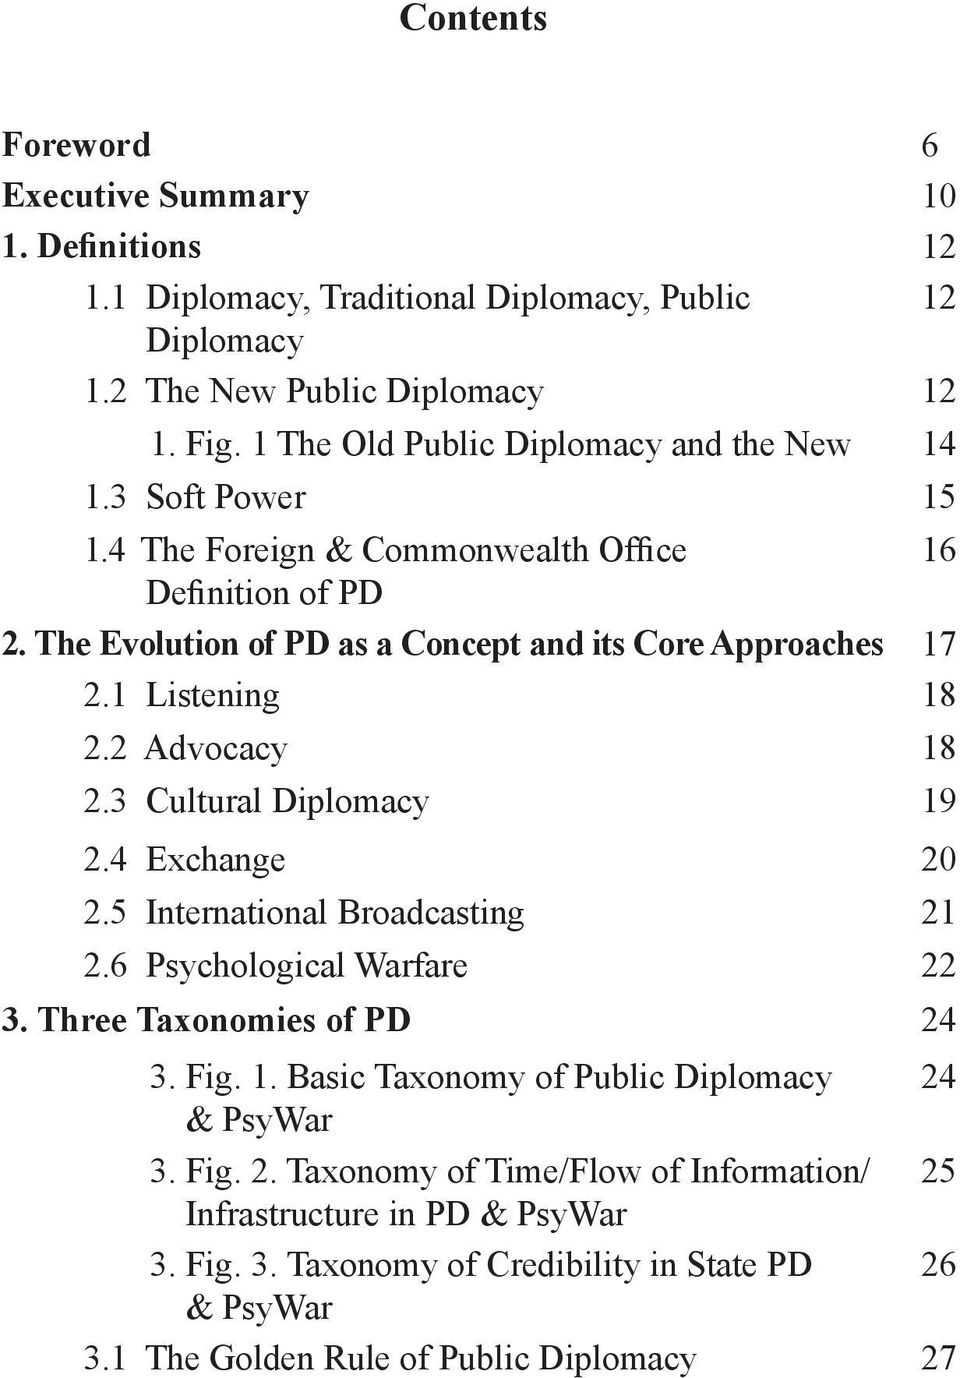 1 Listening 18 2.2 Advocacy 18 2.3 Cultural Diplomacy 19 2.4 Exchange 20 2.5 International Broadcasting 21 2.6 Psychological Warfare 22 3. Three Taxonomies of PD 24 3. Fig. 1. Basic Taxonomy of Public Diplomacy 24 & PsyWar 3.